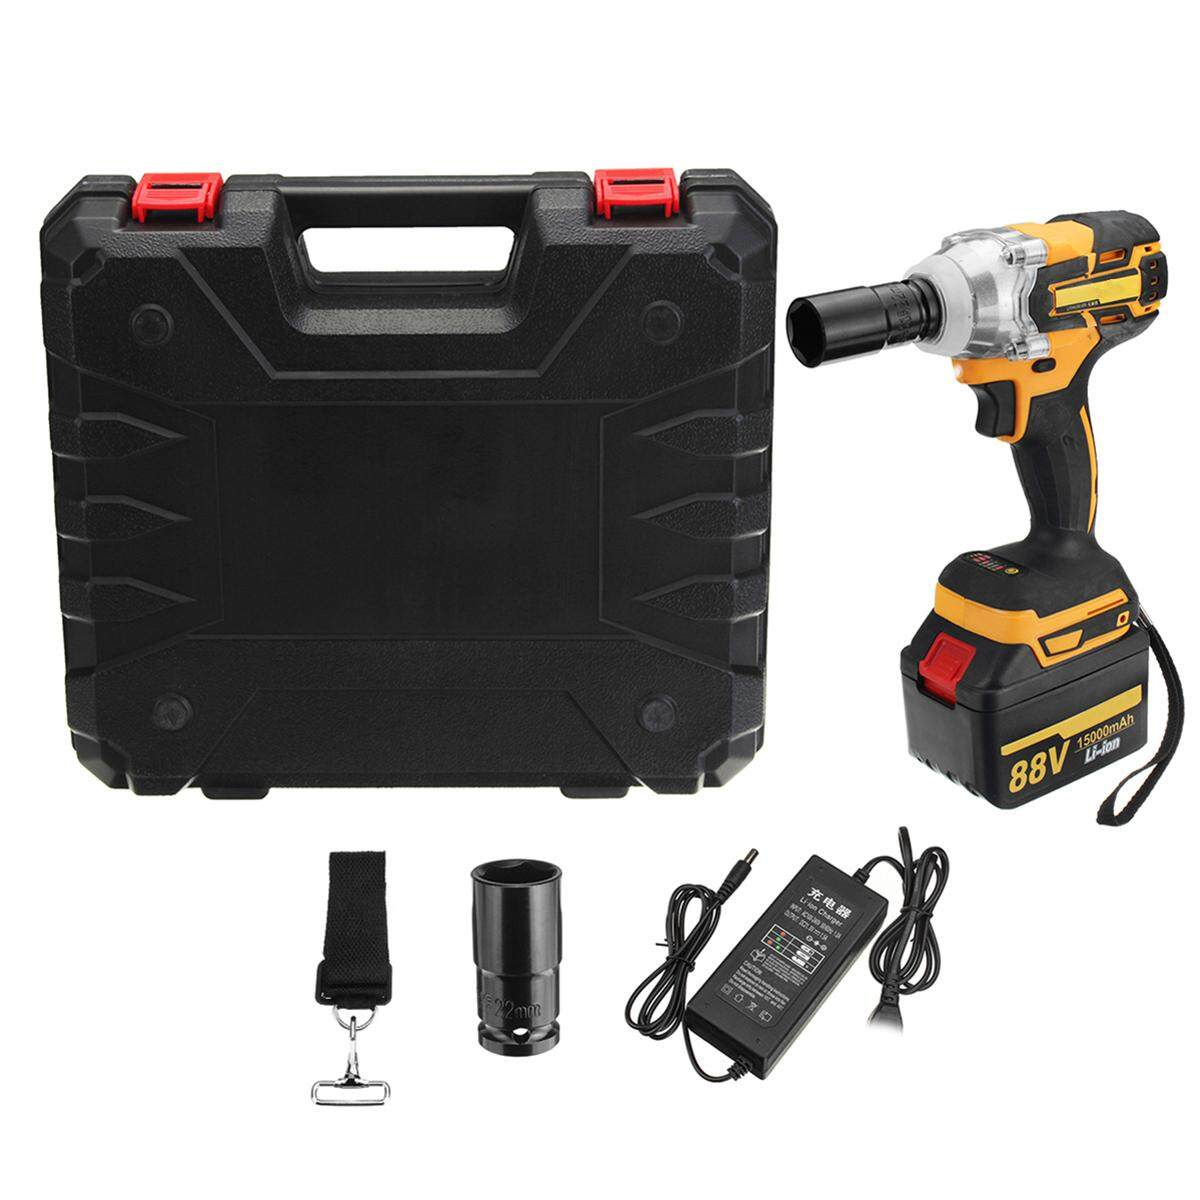 88V 15000mAh 2 Li-Ion Charger Brushless Cordless Drive Impact Wrench